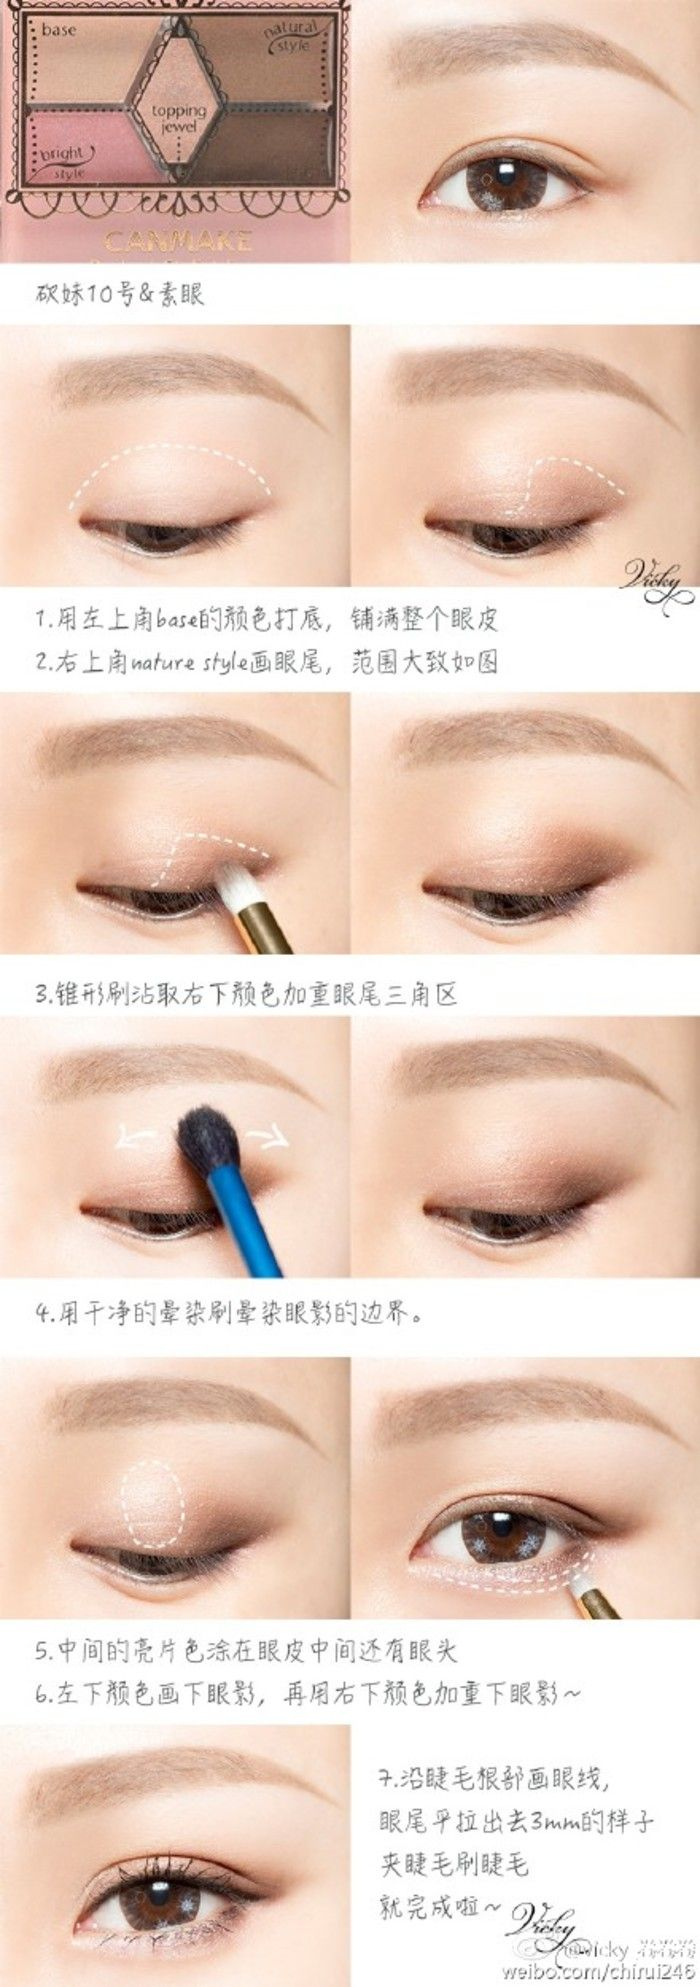 Natural Looking Eye Makeup Tutorial Cartoonview